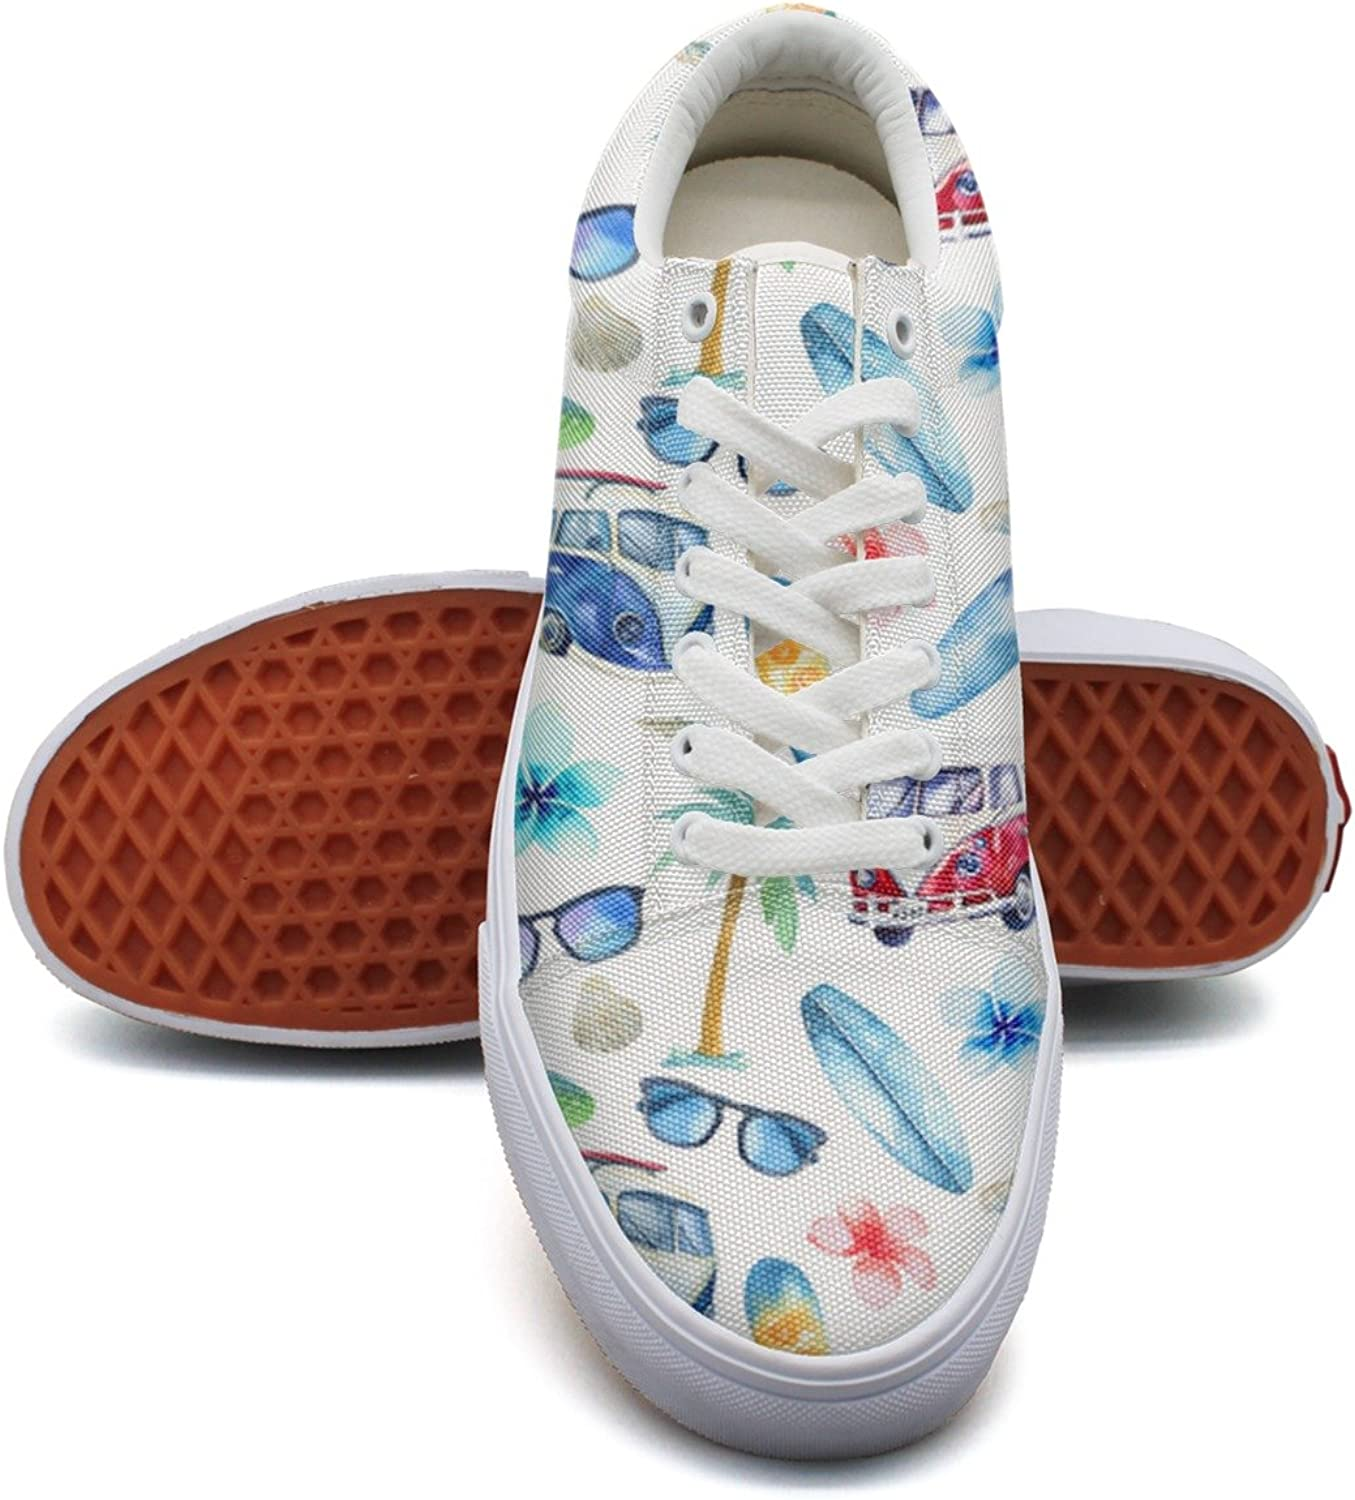 Hjkggd fgfds Casual Watercolor Beach Surfing Patterns Women Girls Canvas shoes